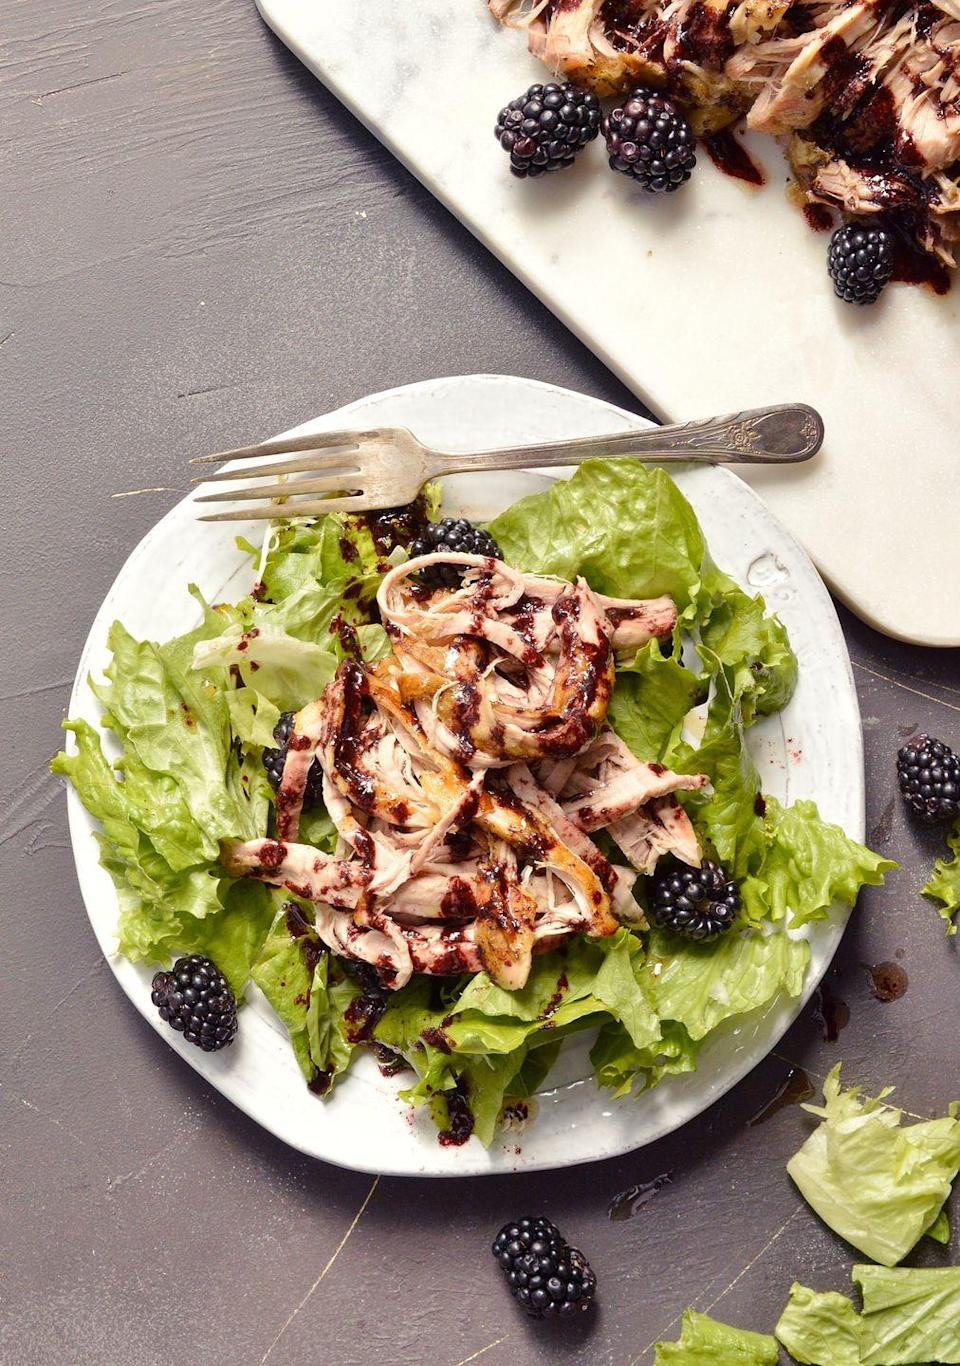 """<p>This moistened, shredded pork recipe by<a href=""""https://wonkywonderful.com/slow-cooker-pork-tenderloin/"""" rel=""""nofollow noopener"""" target=""""_blank"""" data-ylk=""""slk:Wonky Wonderful"""" class=""""link rapid-noclick-resp""""> Wonky Wonderful</a> will literally fall apart in your mouth, and it has a delicious sweetness from a blackberry sauce to nicely balance out the meal. It's also Whole30 and paleo compliant, so it's great for those on restrictive diets looking to slash carbs and load up on healthier protein or fats. Stuff it into sandwiches, tacos, or eat plain over a bed of lettuce.</p>"""